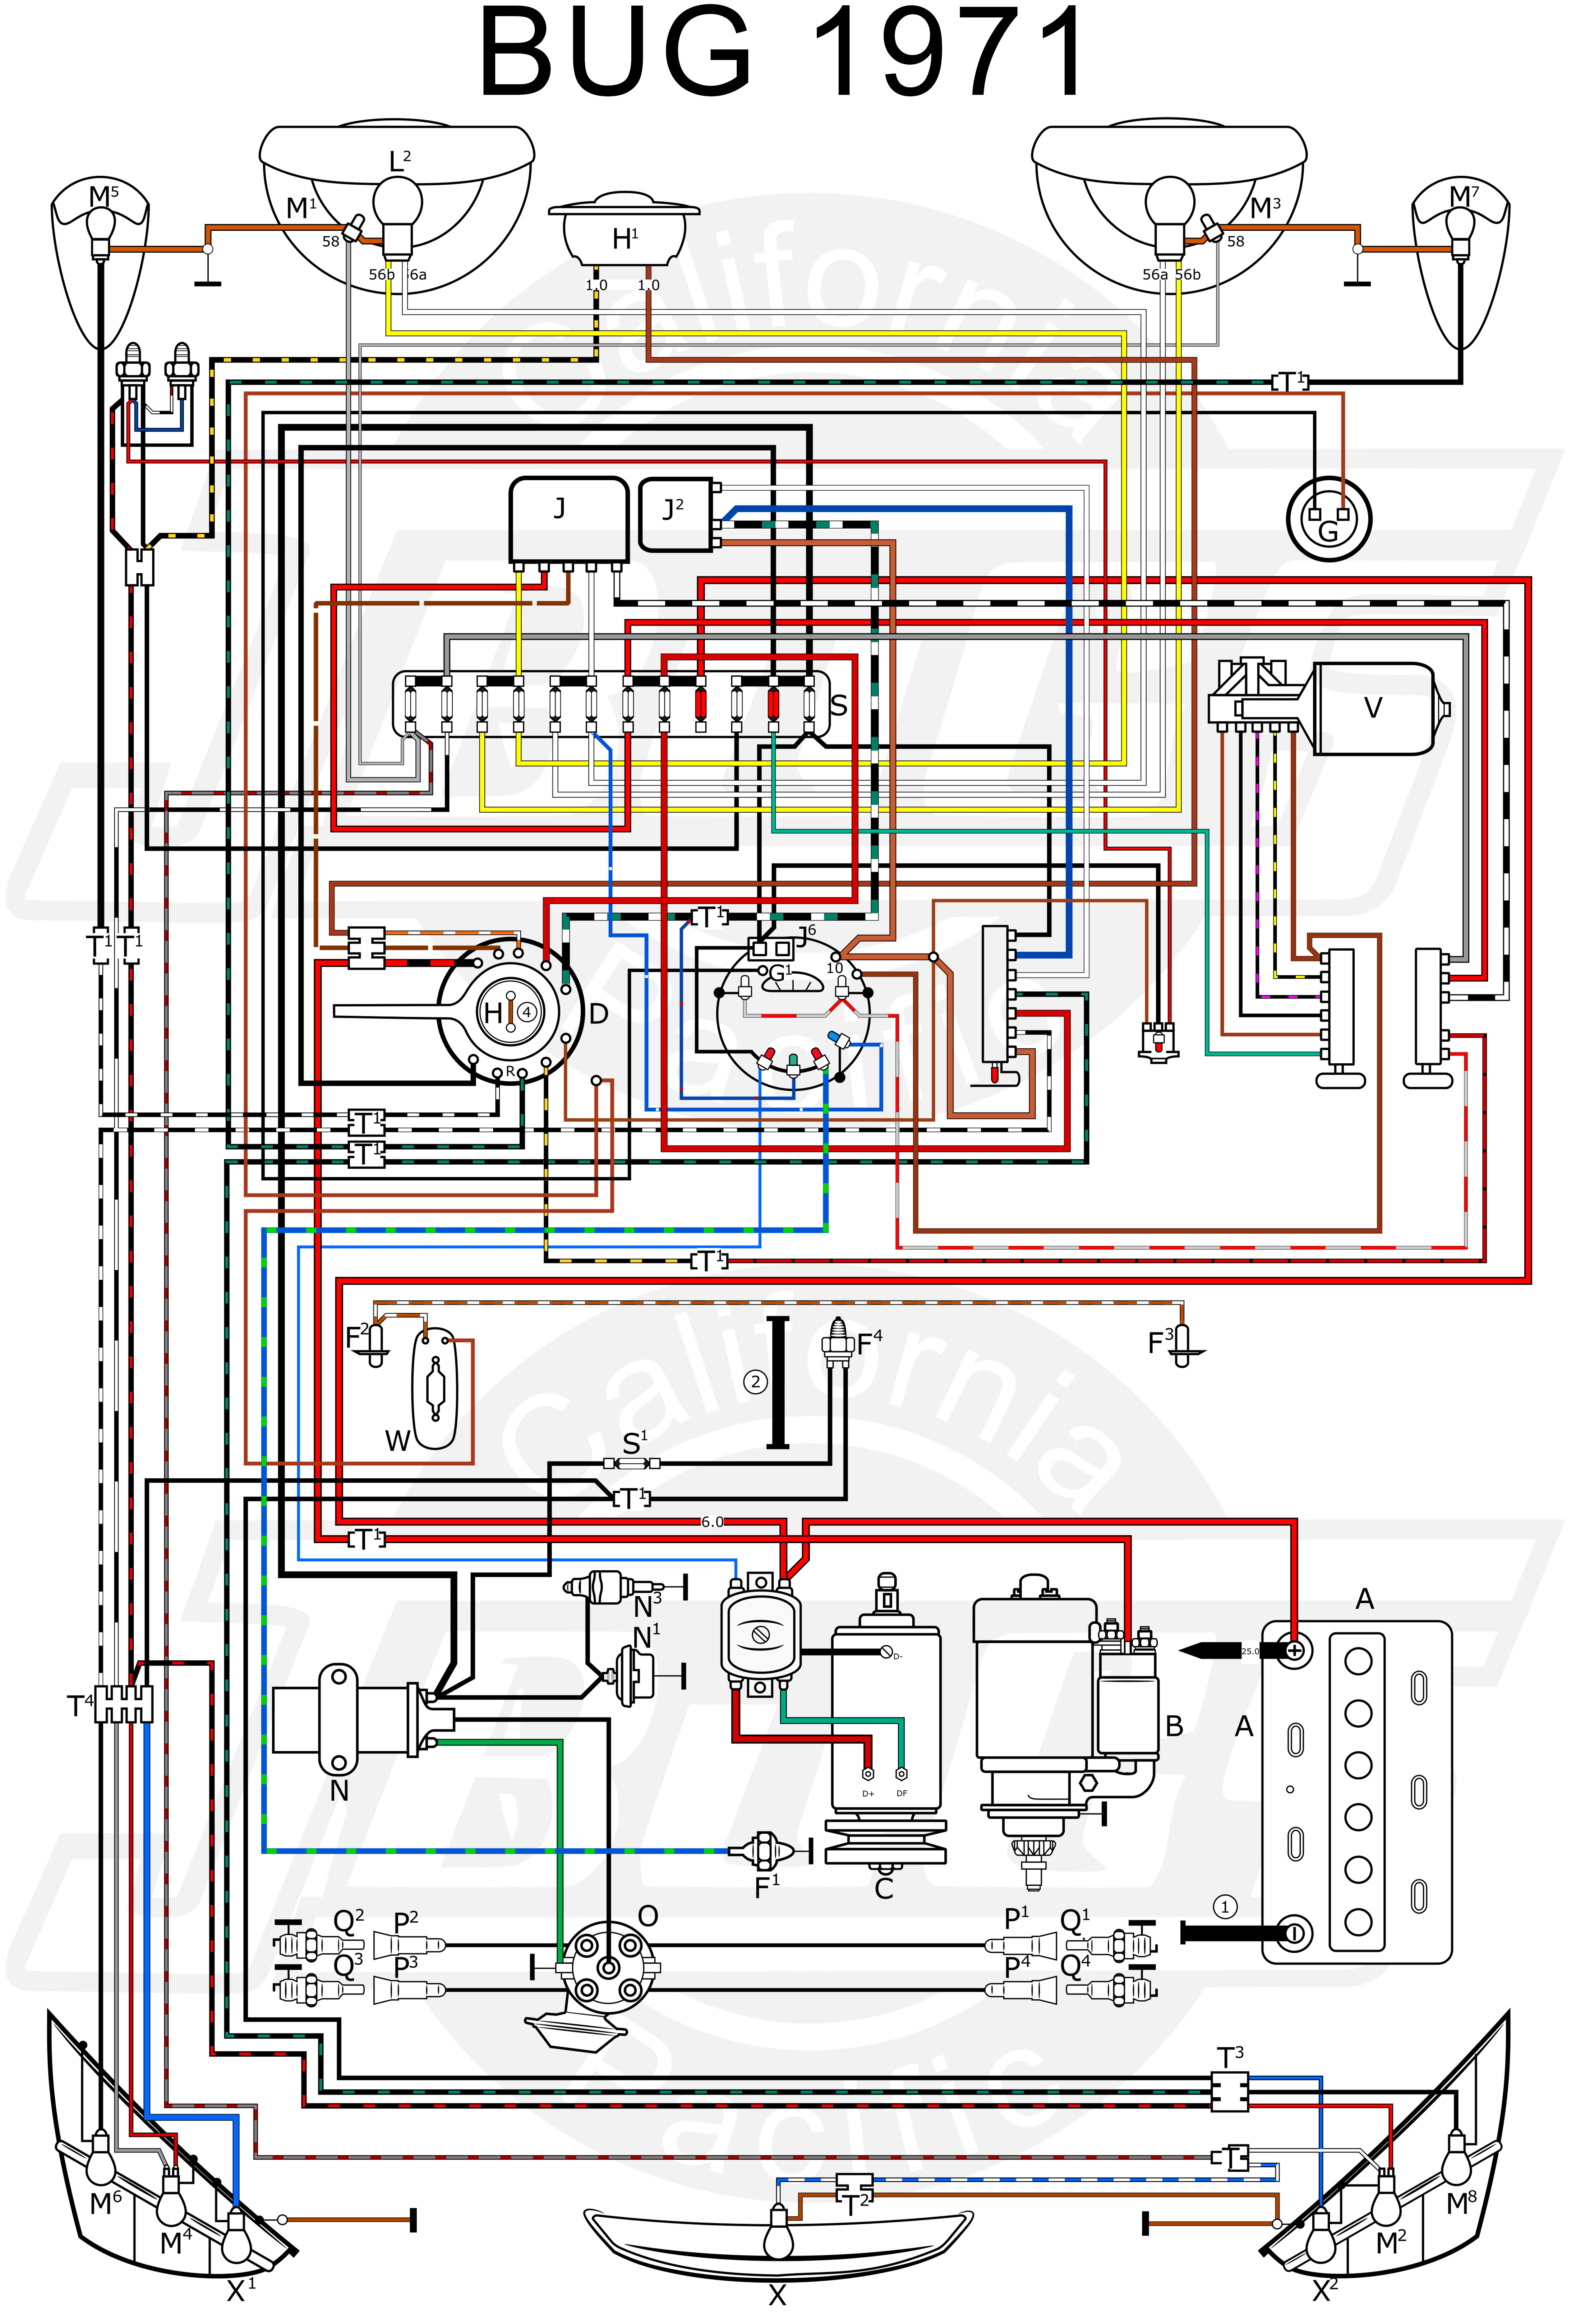 VW Bug 1971 Wiring Diagram vw super beetle wiring diagram enthusiast wiring diagrams \u2022